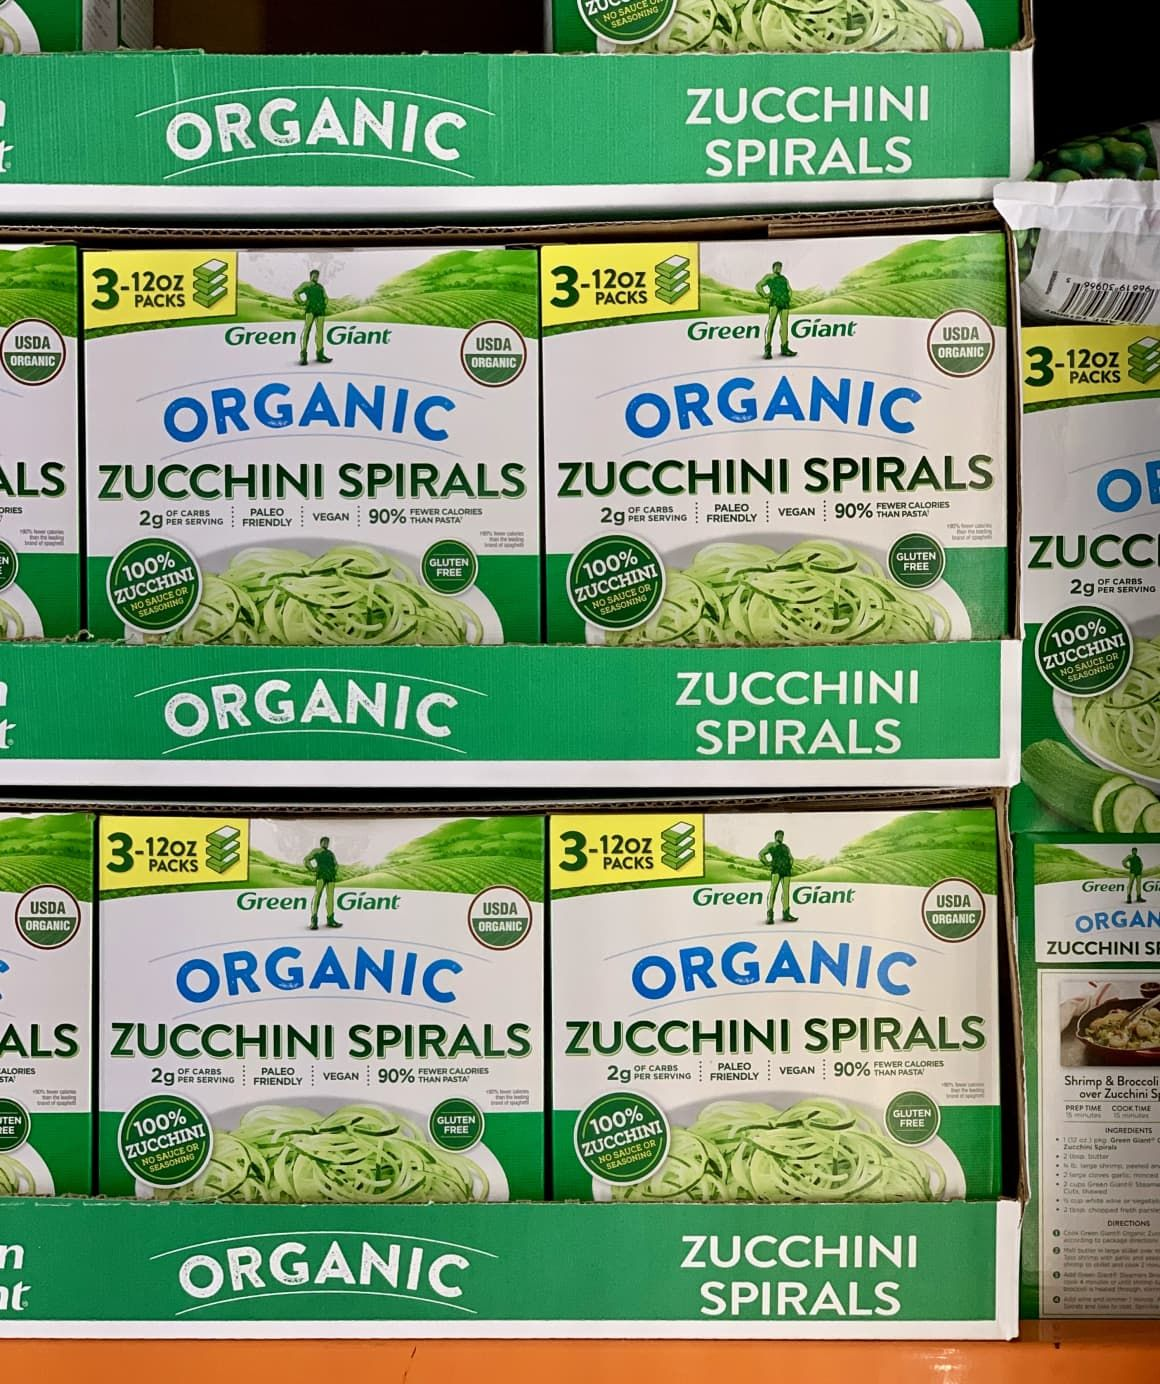 The Best New Frozen Foods At Costco According To A Nutritionist